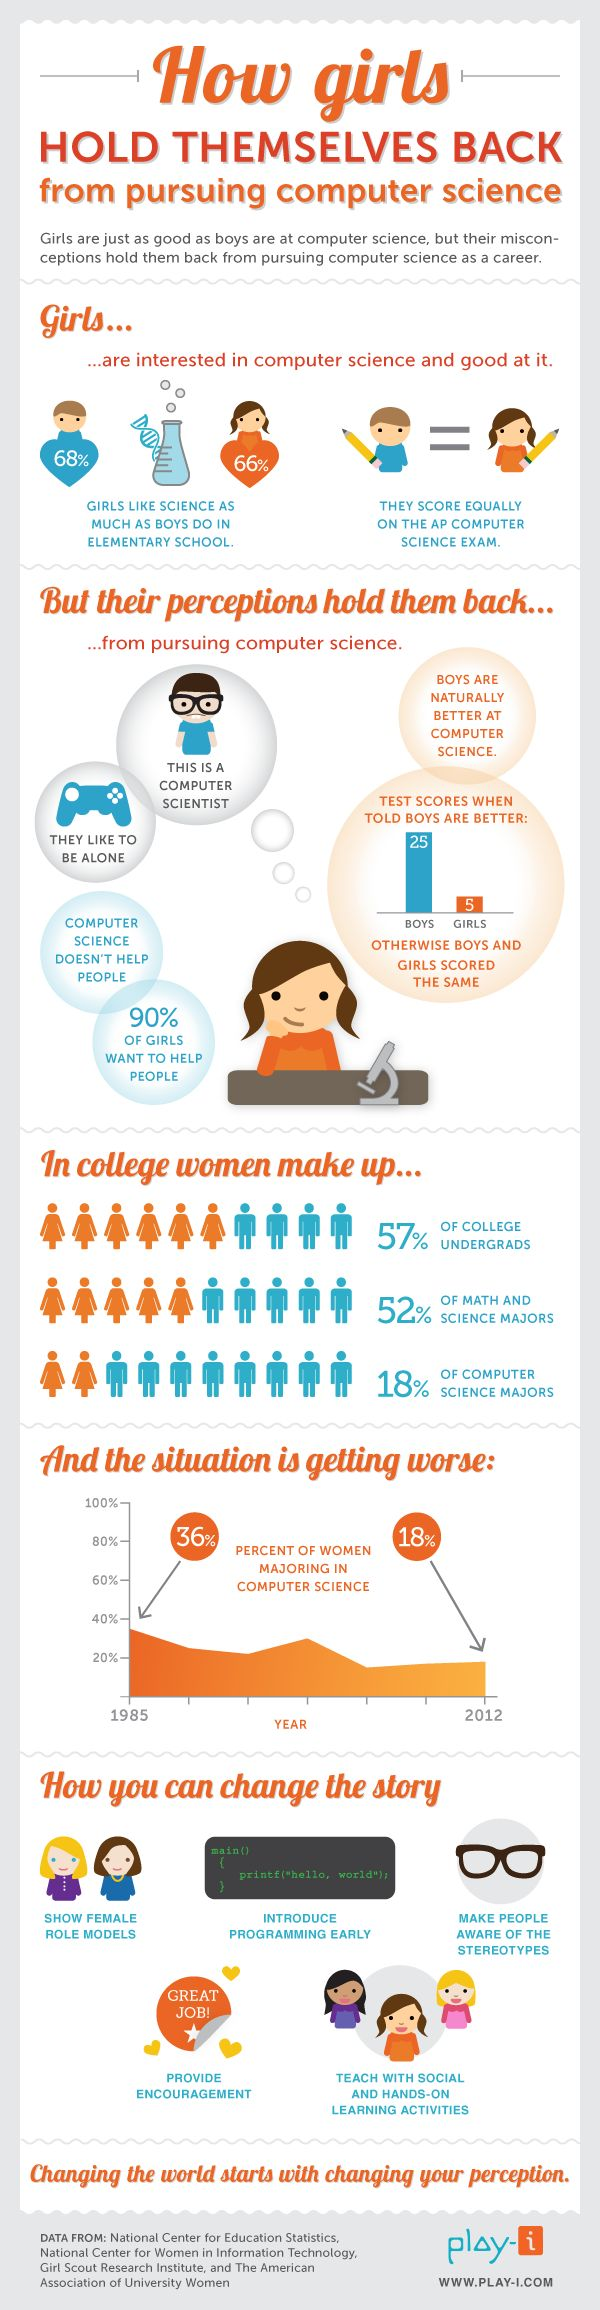 How Girls Hold Themselves Back from Pursuing Computer Science #infographic #STEM #computer #programmer #women #empowergirls